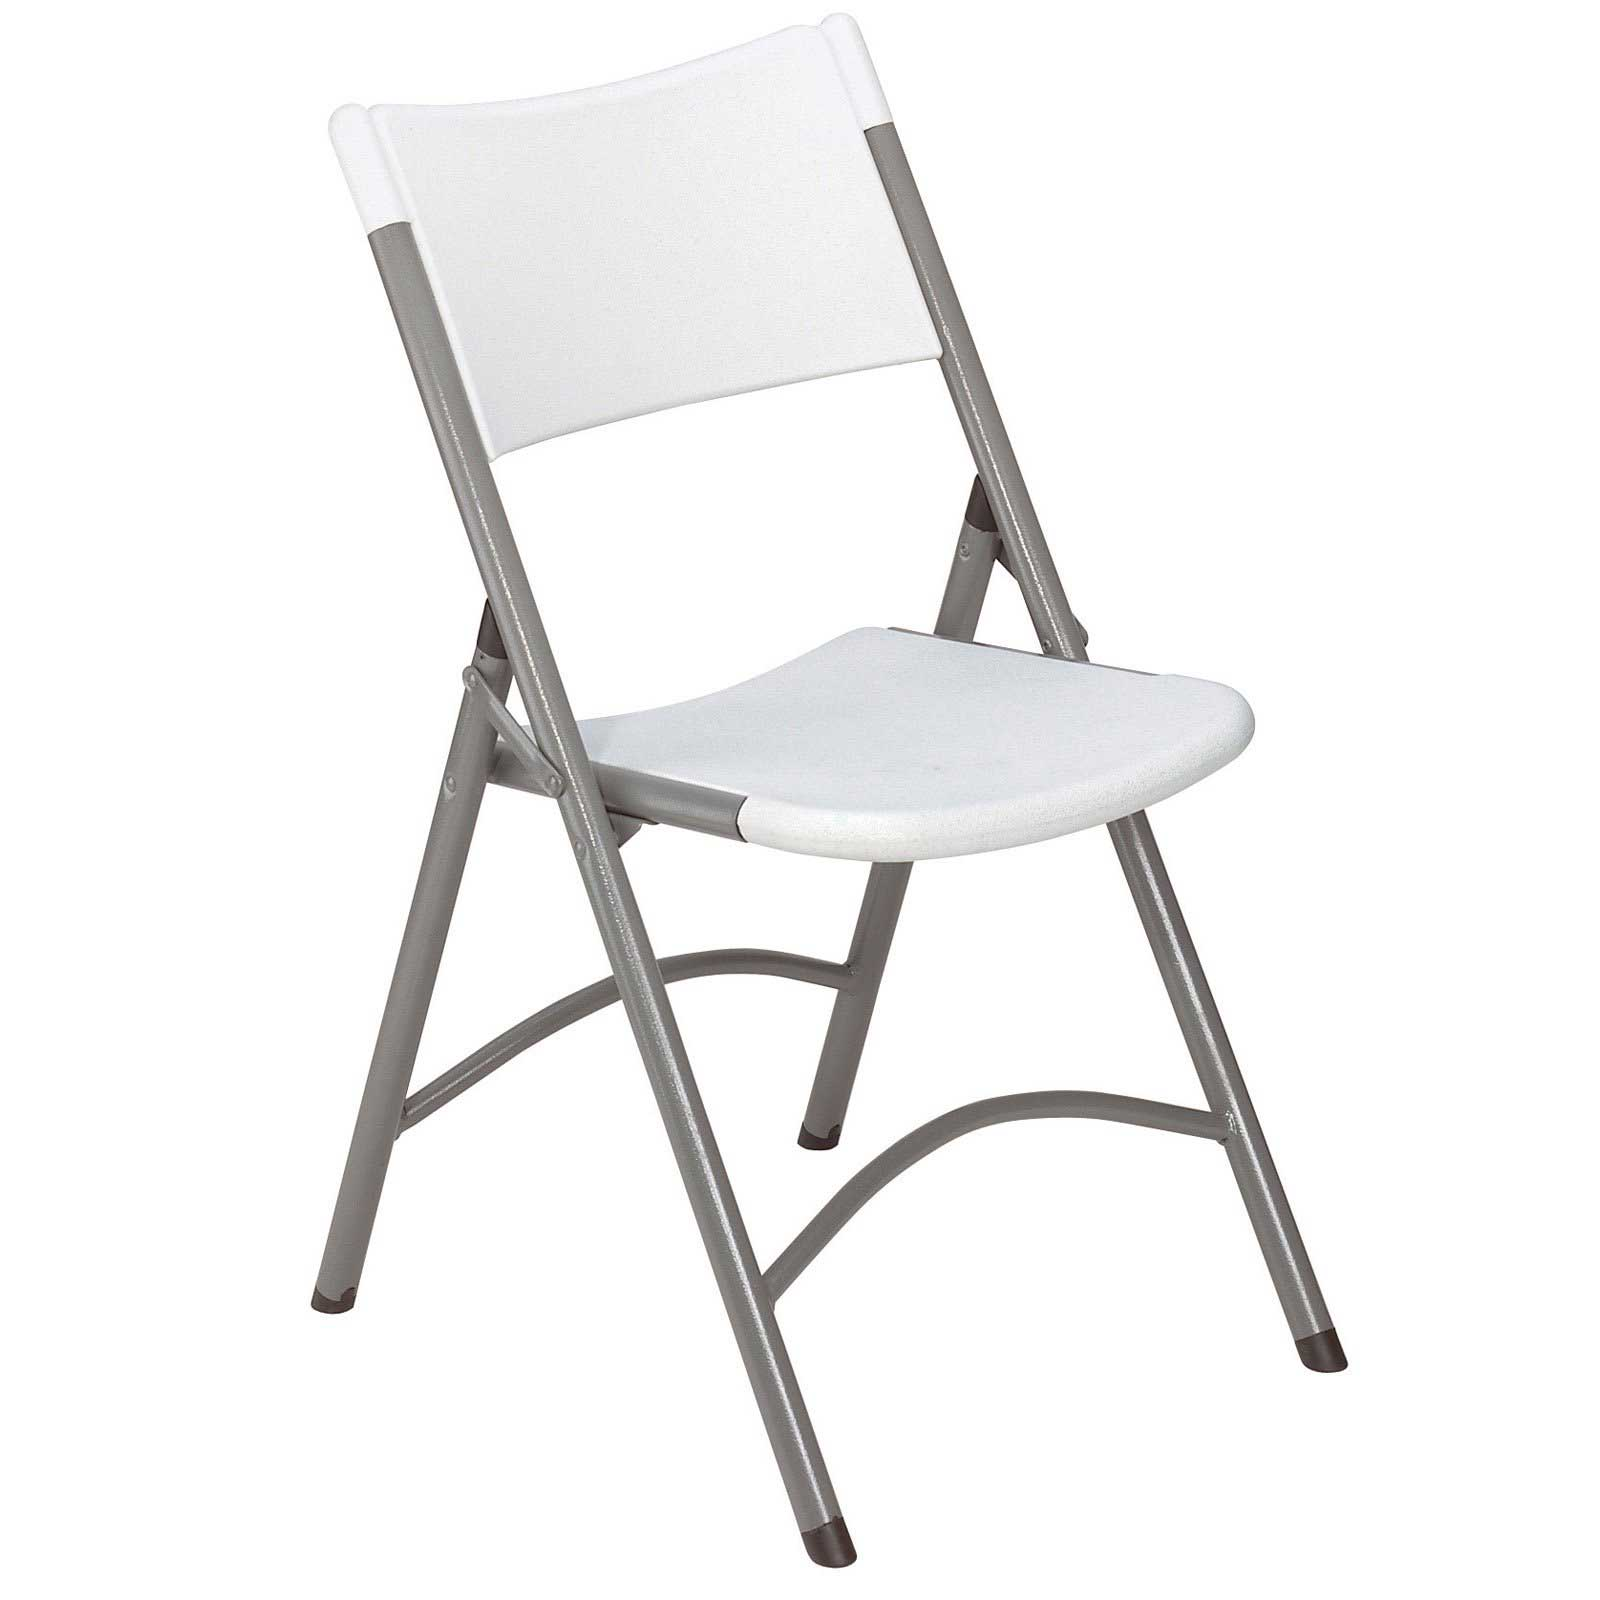 Blow molded lightweight folding chairs in white